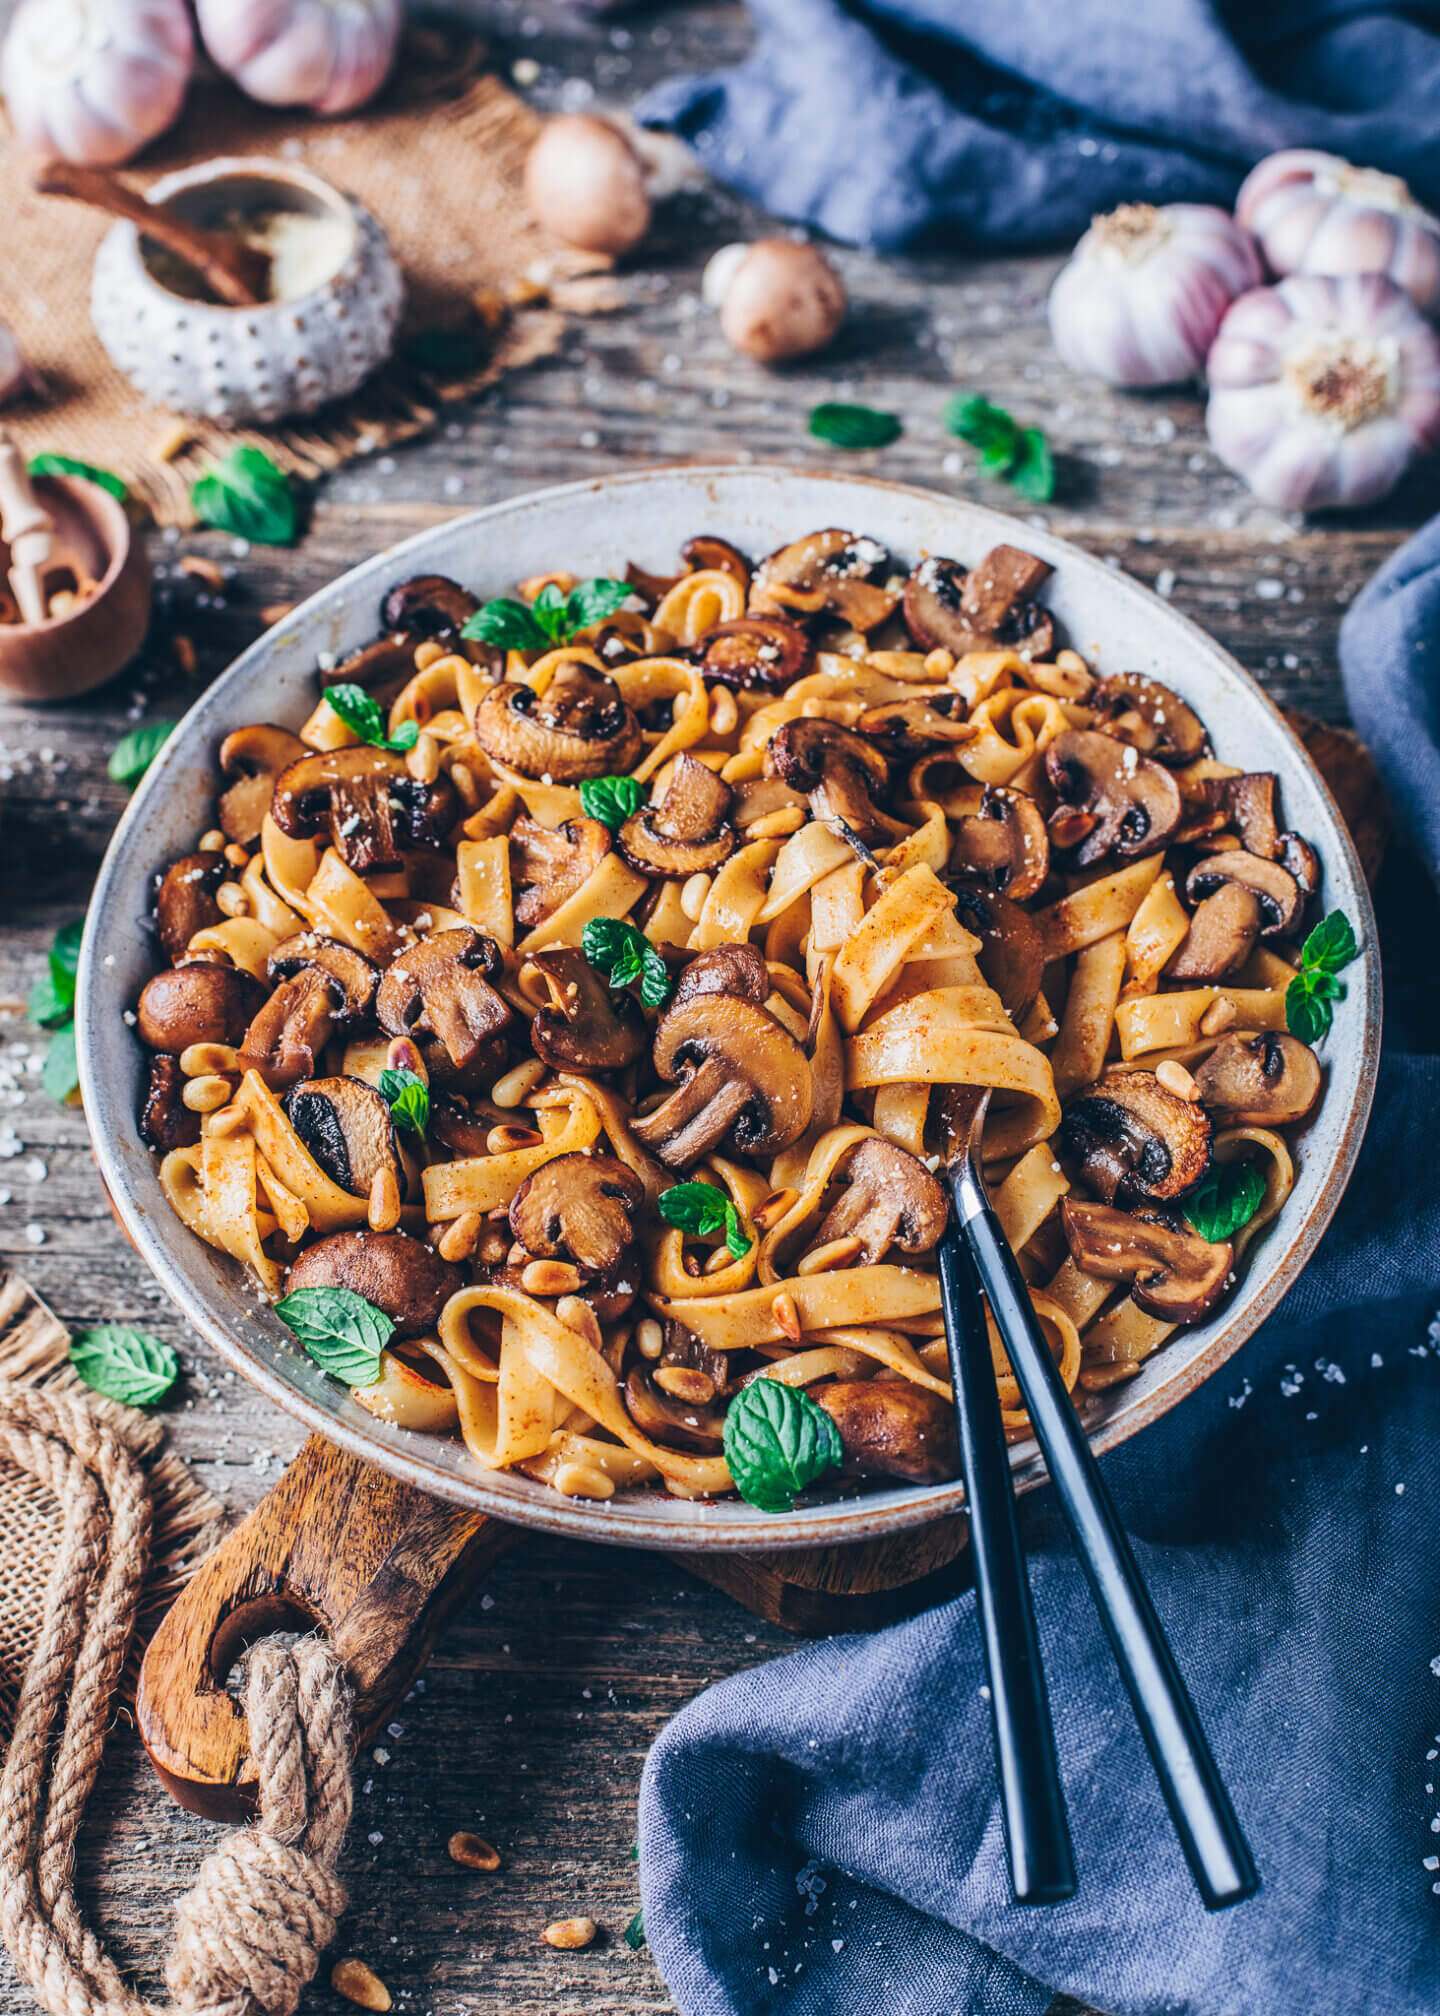 Pasta with caramelized mushrooms